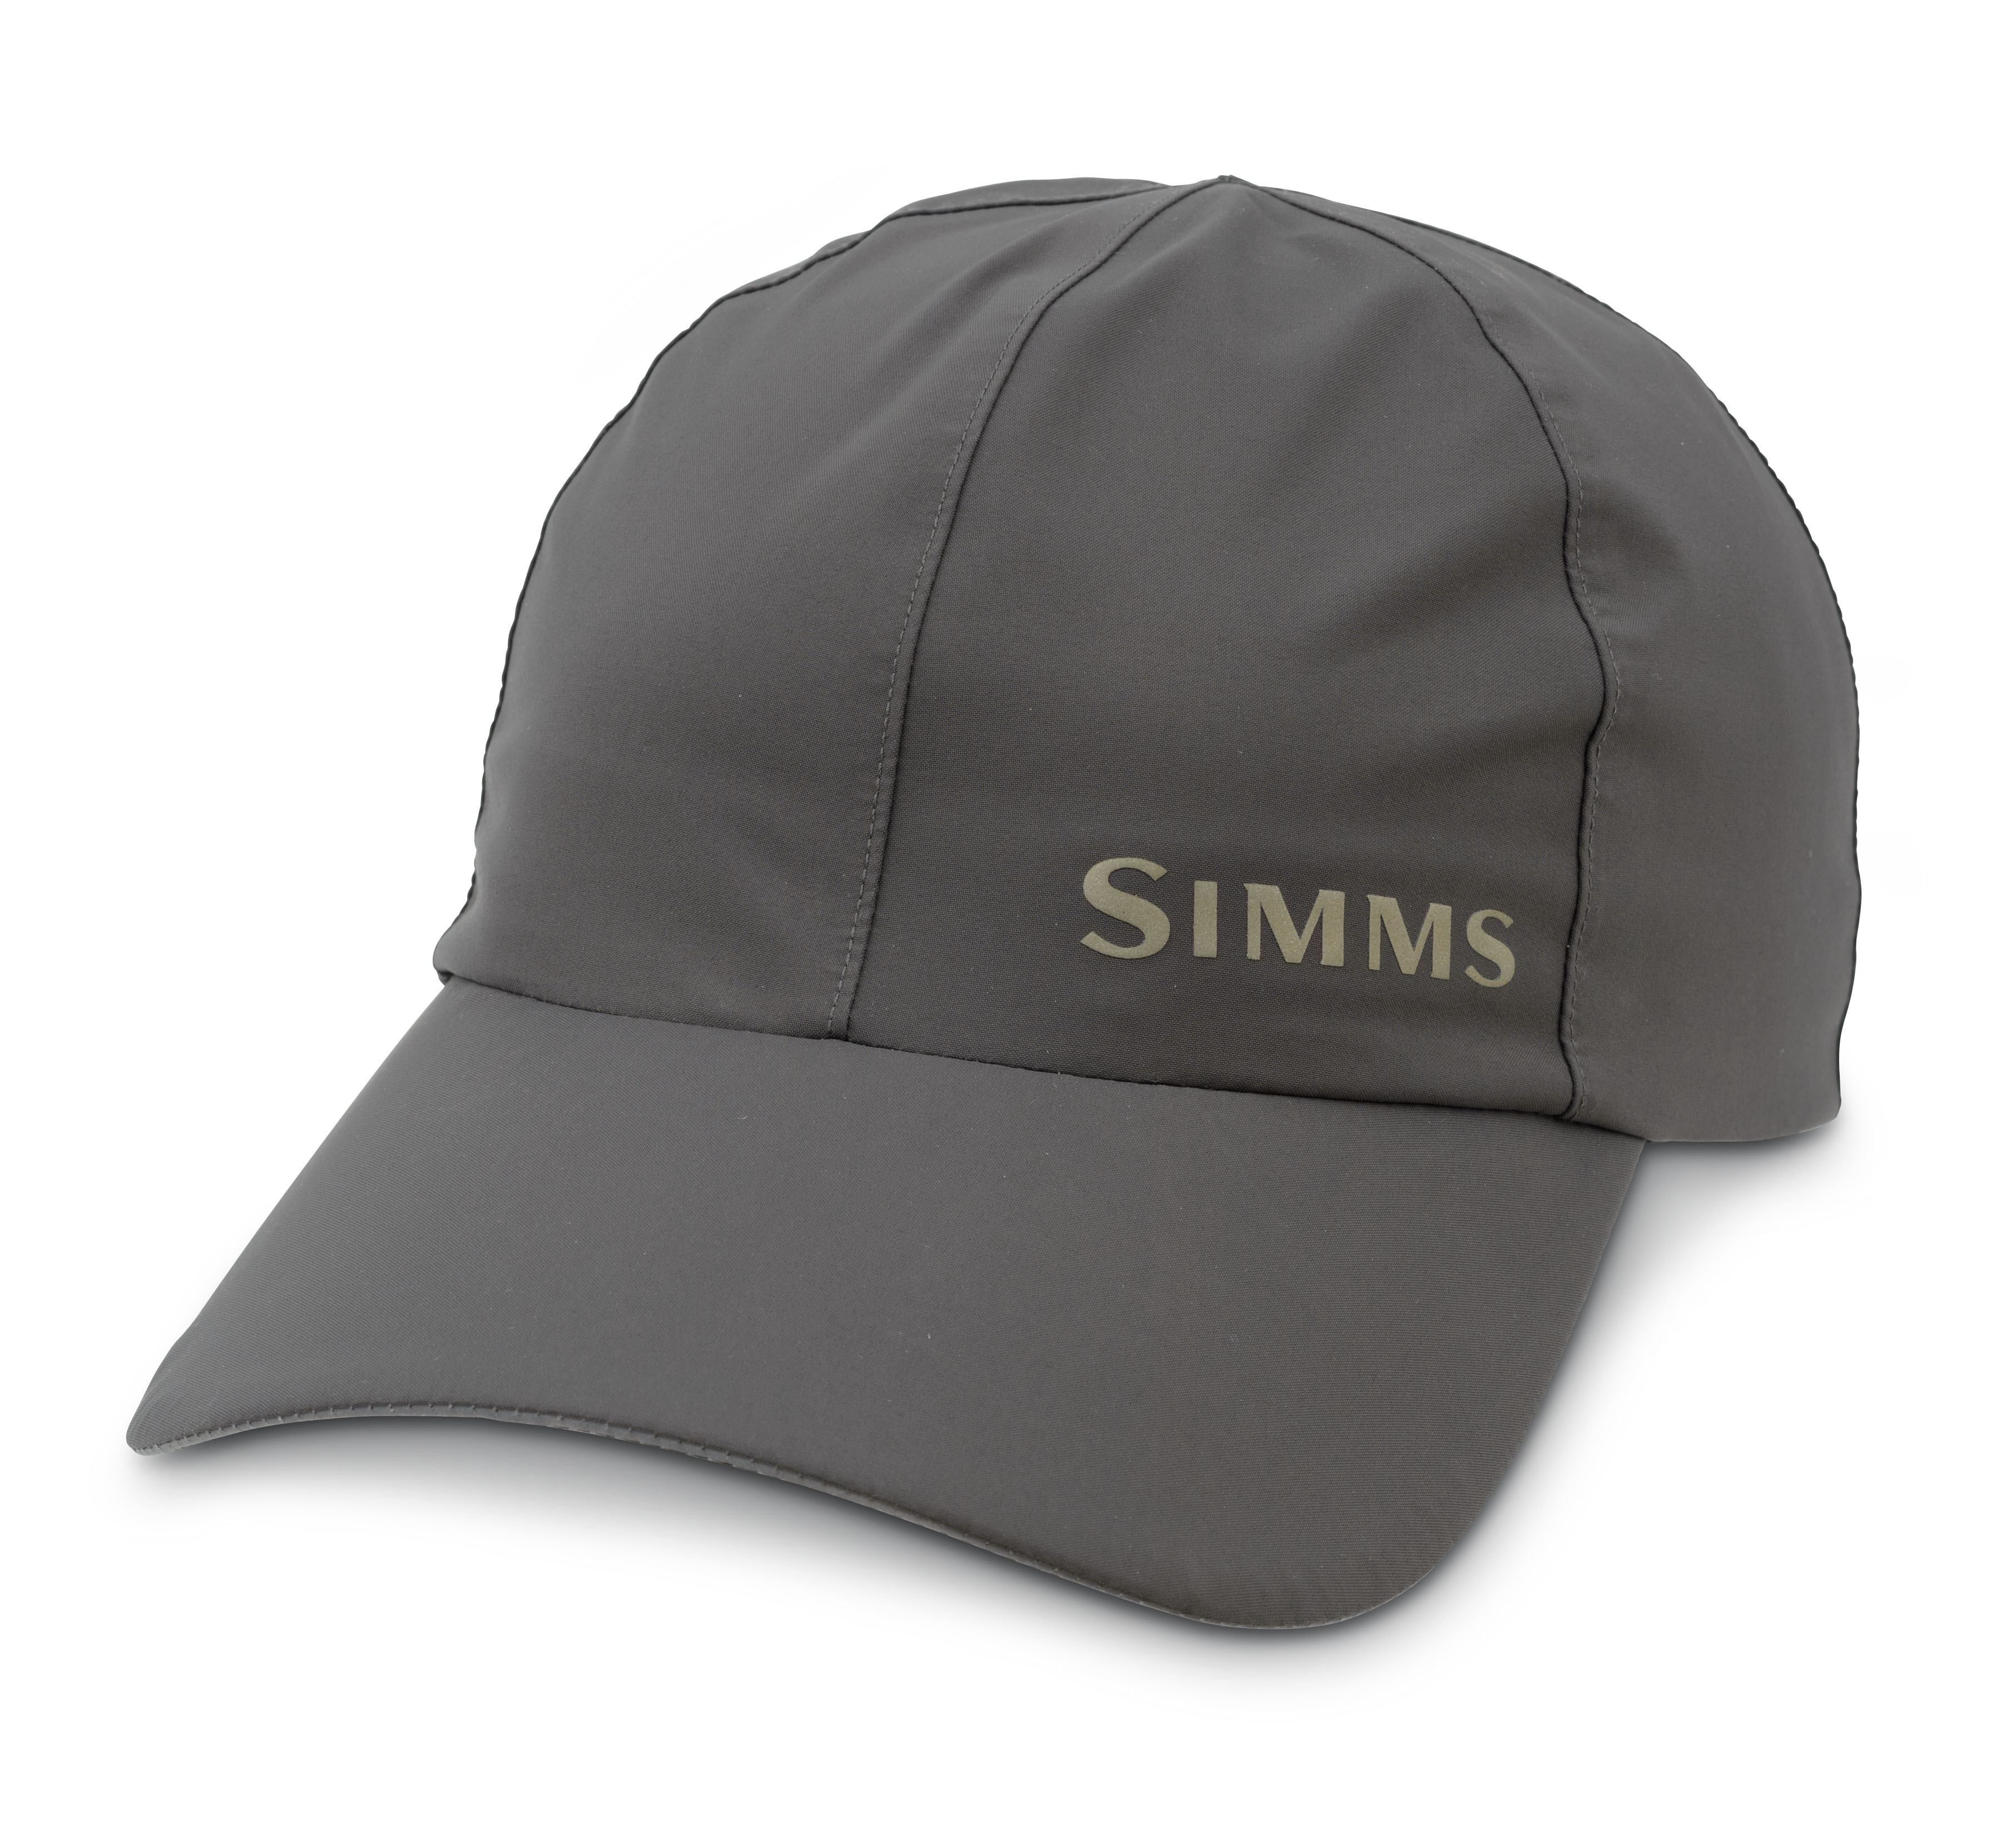 Simms g4 caps glasgow angling centre for Simms fishing hat